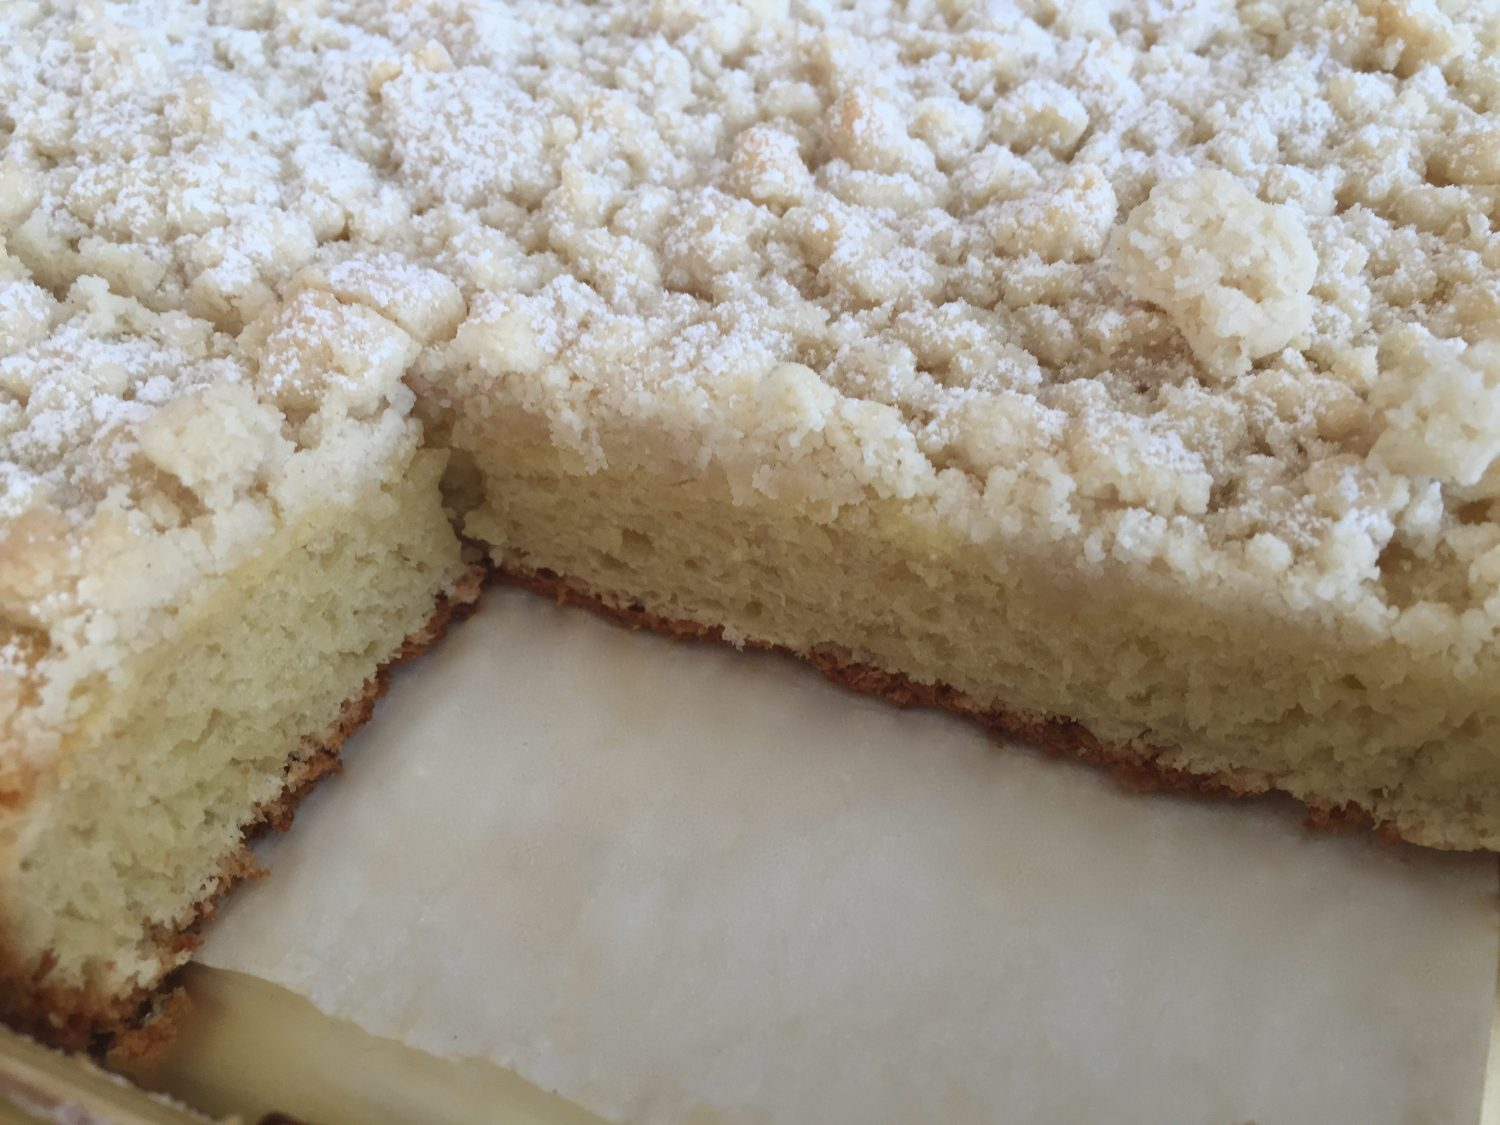 Original German Crumb Cake Recipe Basic Yeast Dough Topped With